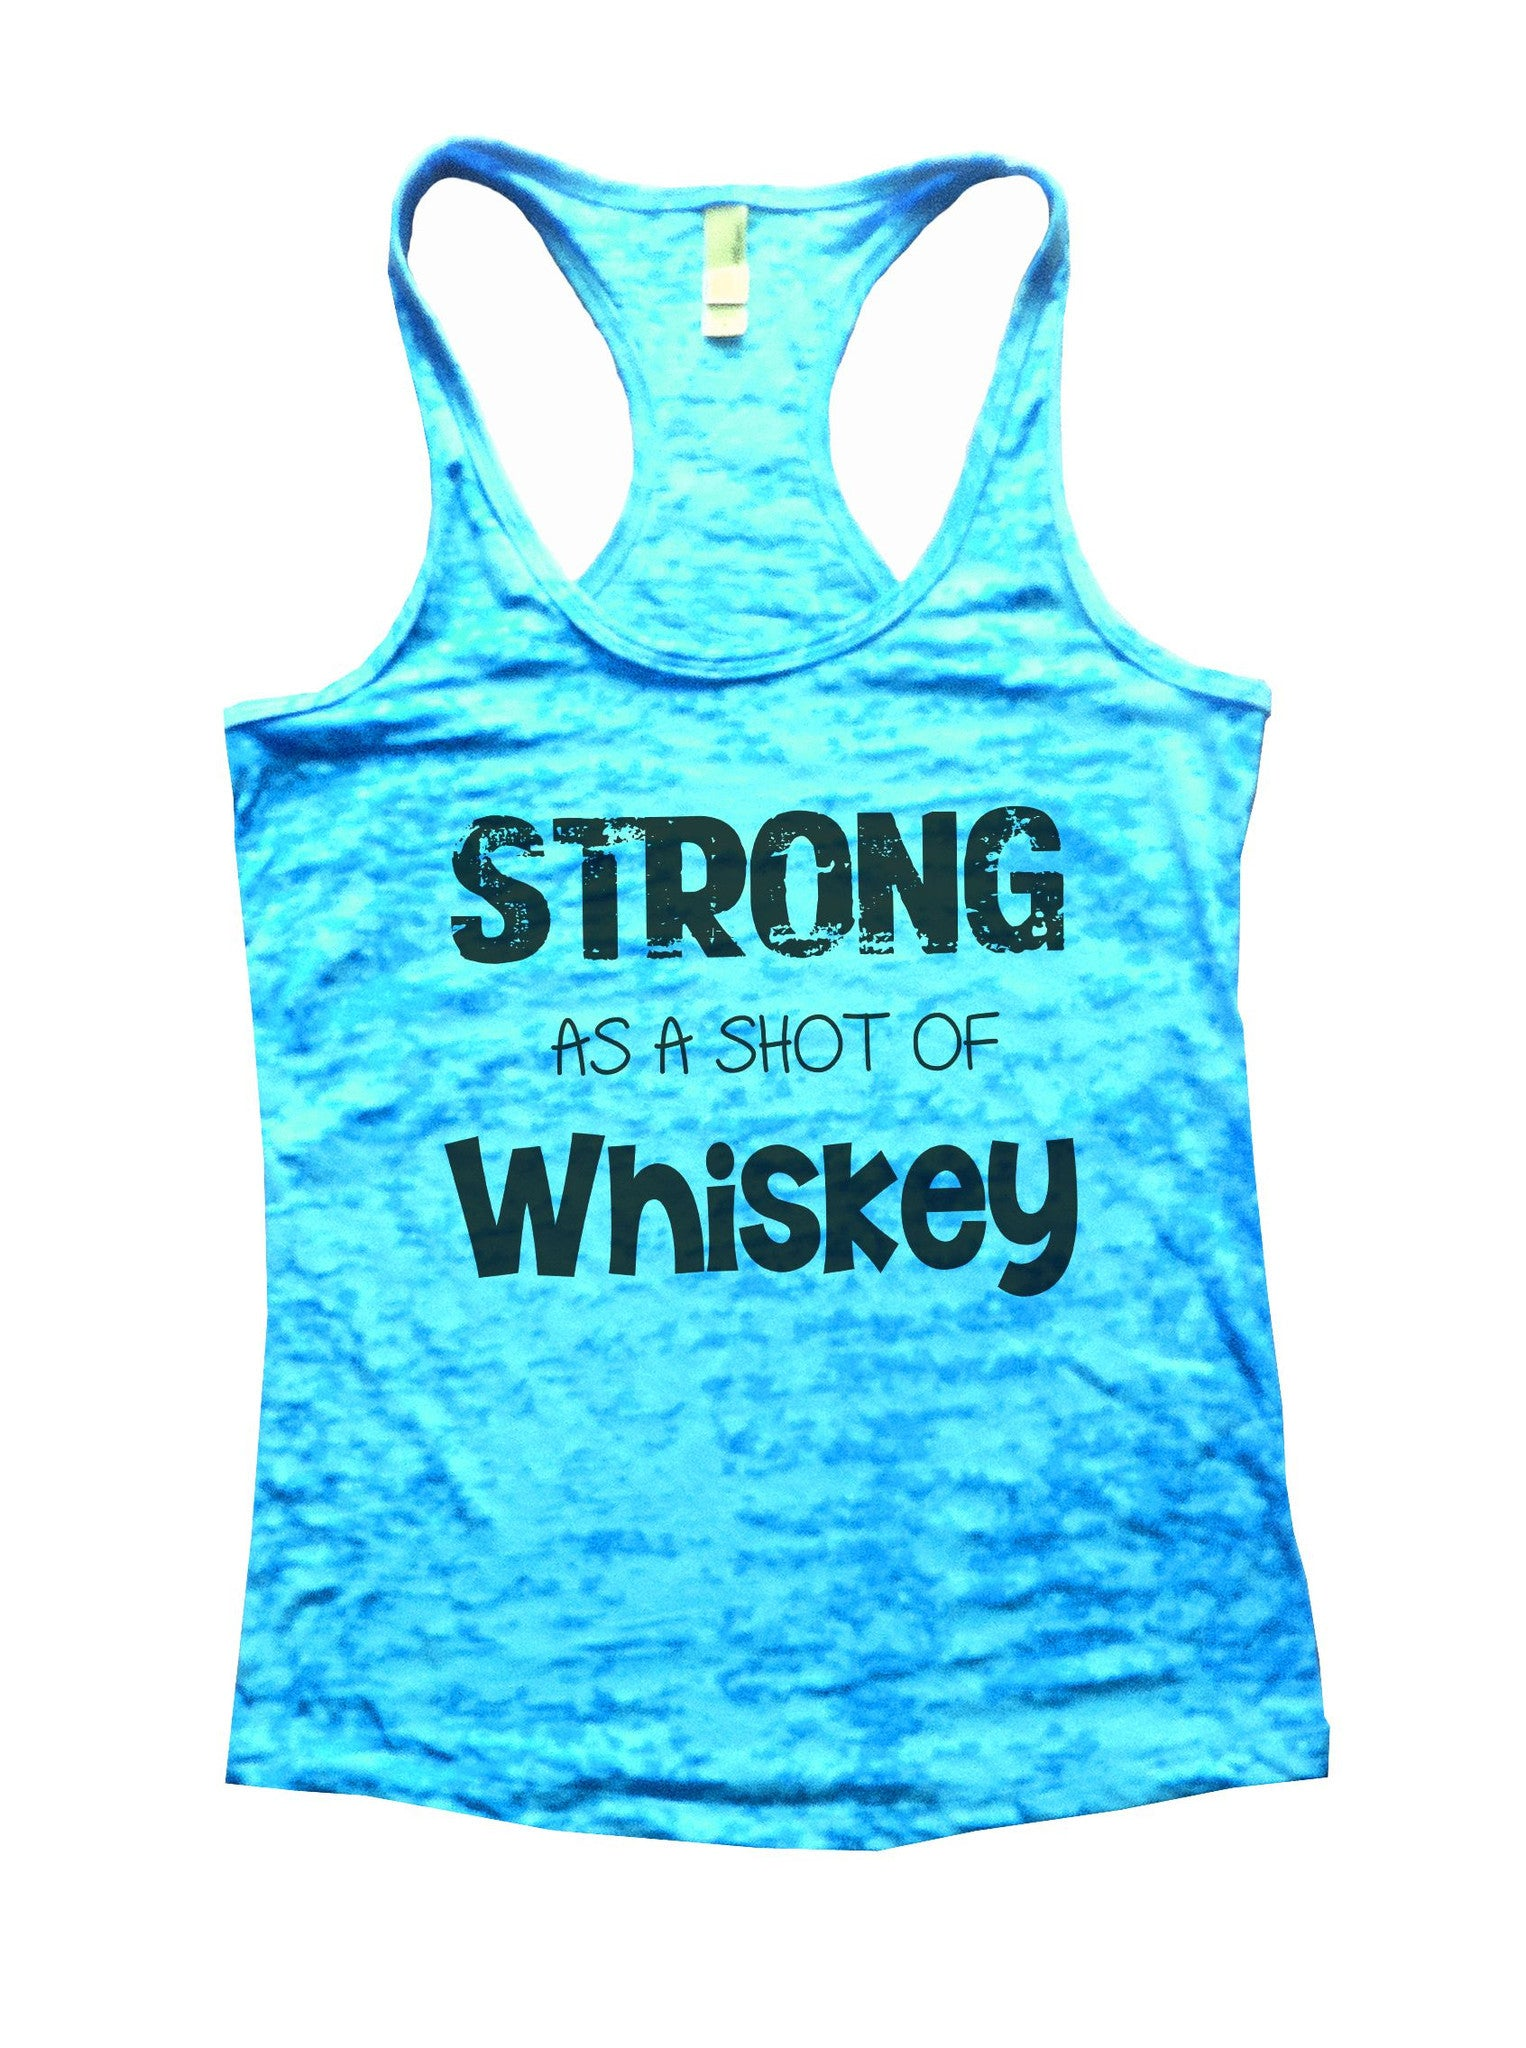 Strong As A Shot Of Whiskey Burnout Tank Top By BurnoutTankTops.com - 717 - Funny Shirts Tank Tops Burnouts and Triblends  - 4